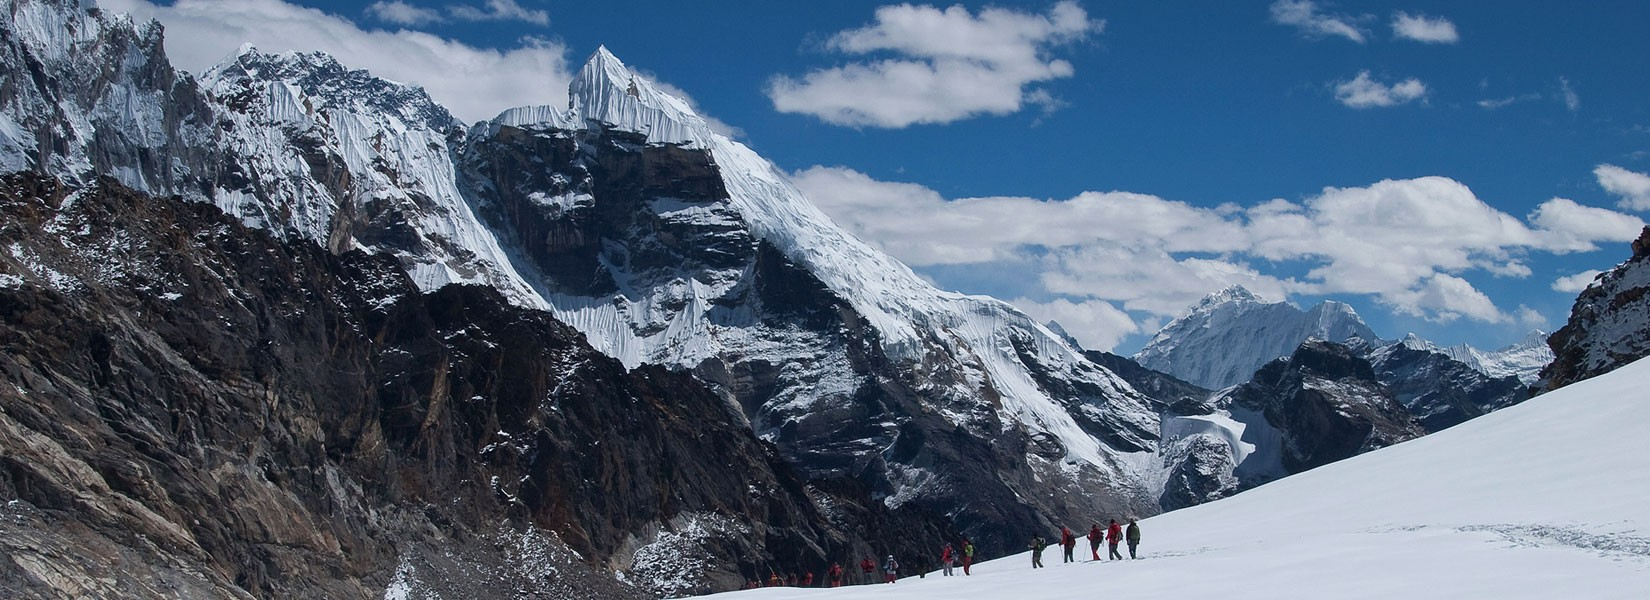 Everest Base Camp – Cho La Pass – Gokyo Ri Trek